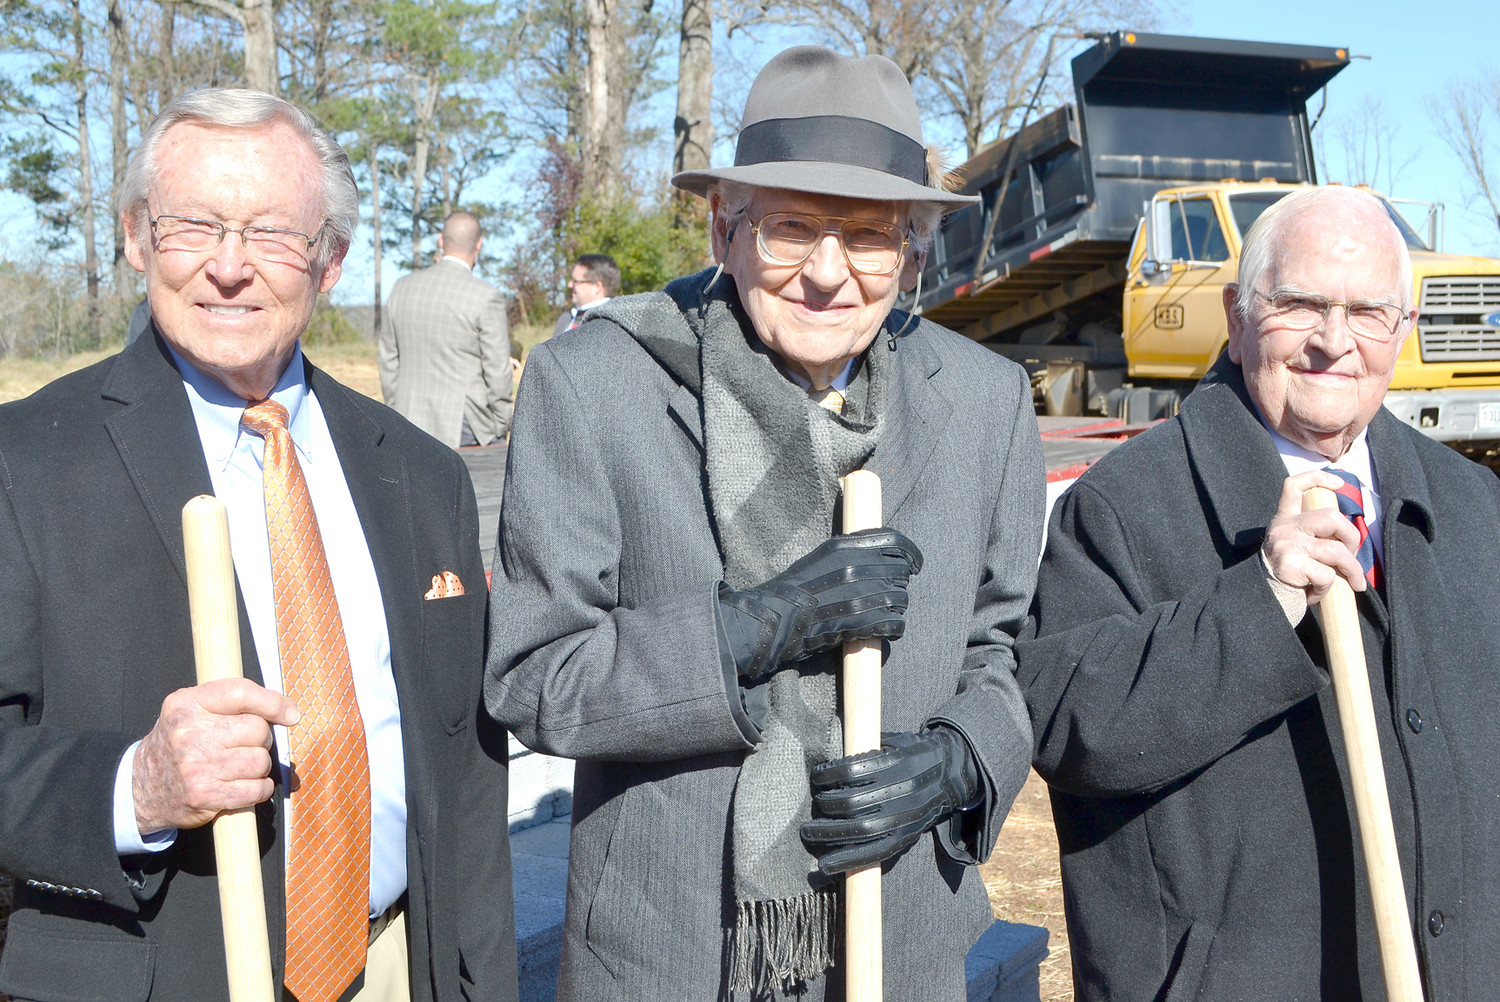 SEVERAL OF THE OLDER MEMBERS of the church were present at the Westmore Church of God groundbreaking Sunday. From left are Dudley Pyeatt, Dr. James Beaty and Don Pemberton.